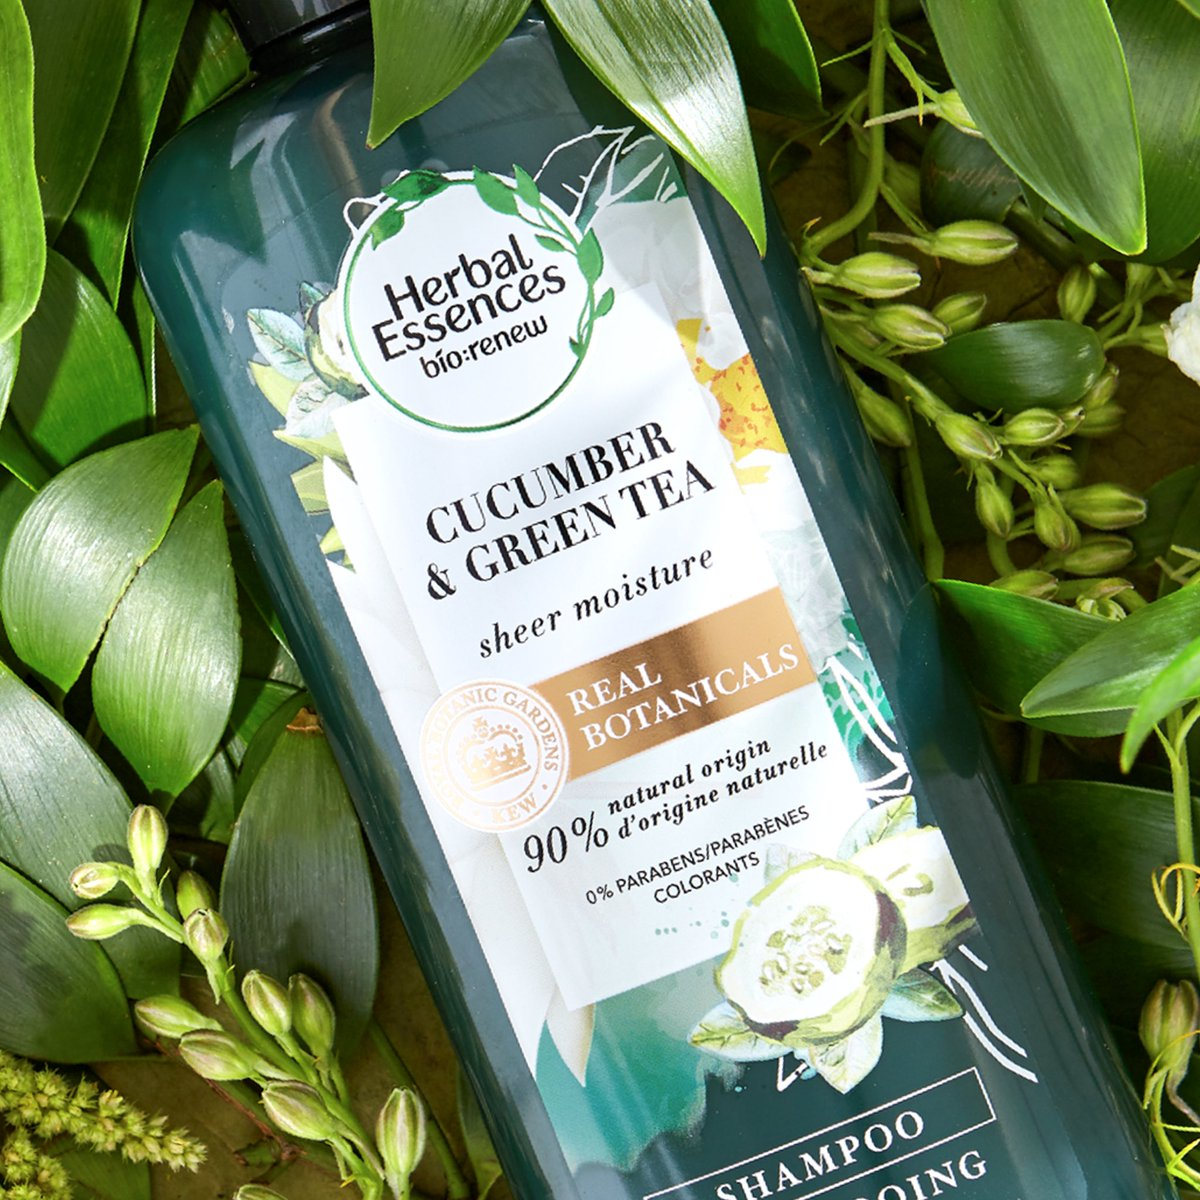 Easing your hair woes from root to tip with our Cucumber and Green Tea Collection 🥒 Its sheer moisture is great for treating dry, oily or combination hair, not to mention it has real botanicals endorsed by the Royal Botanic Gardens, Kew @KewGardens. How's your hair doing today? https://t.co/a0RsetRYFi